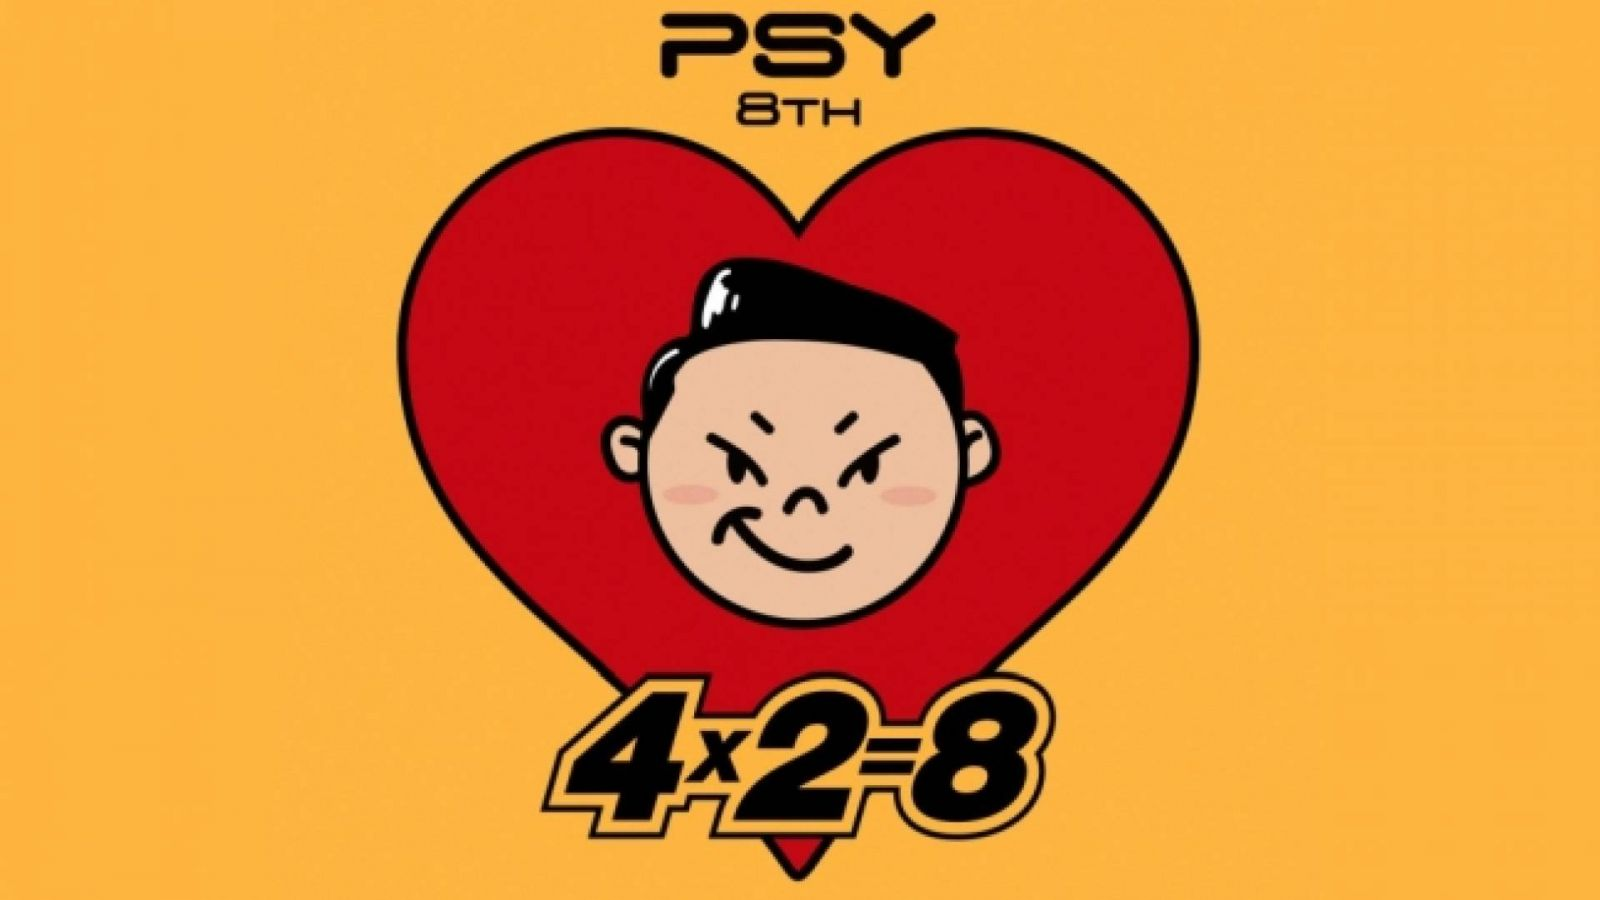 Neues Album von PSY © YG Entertainment Inc